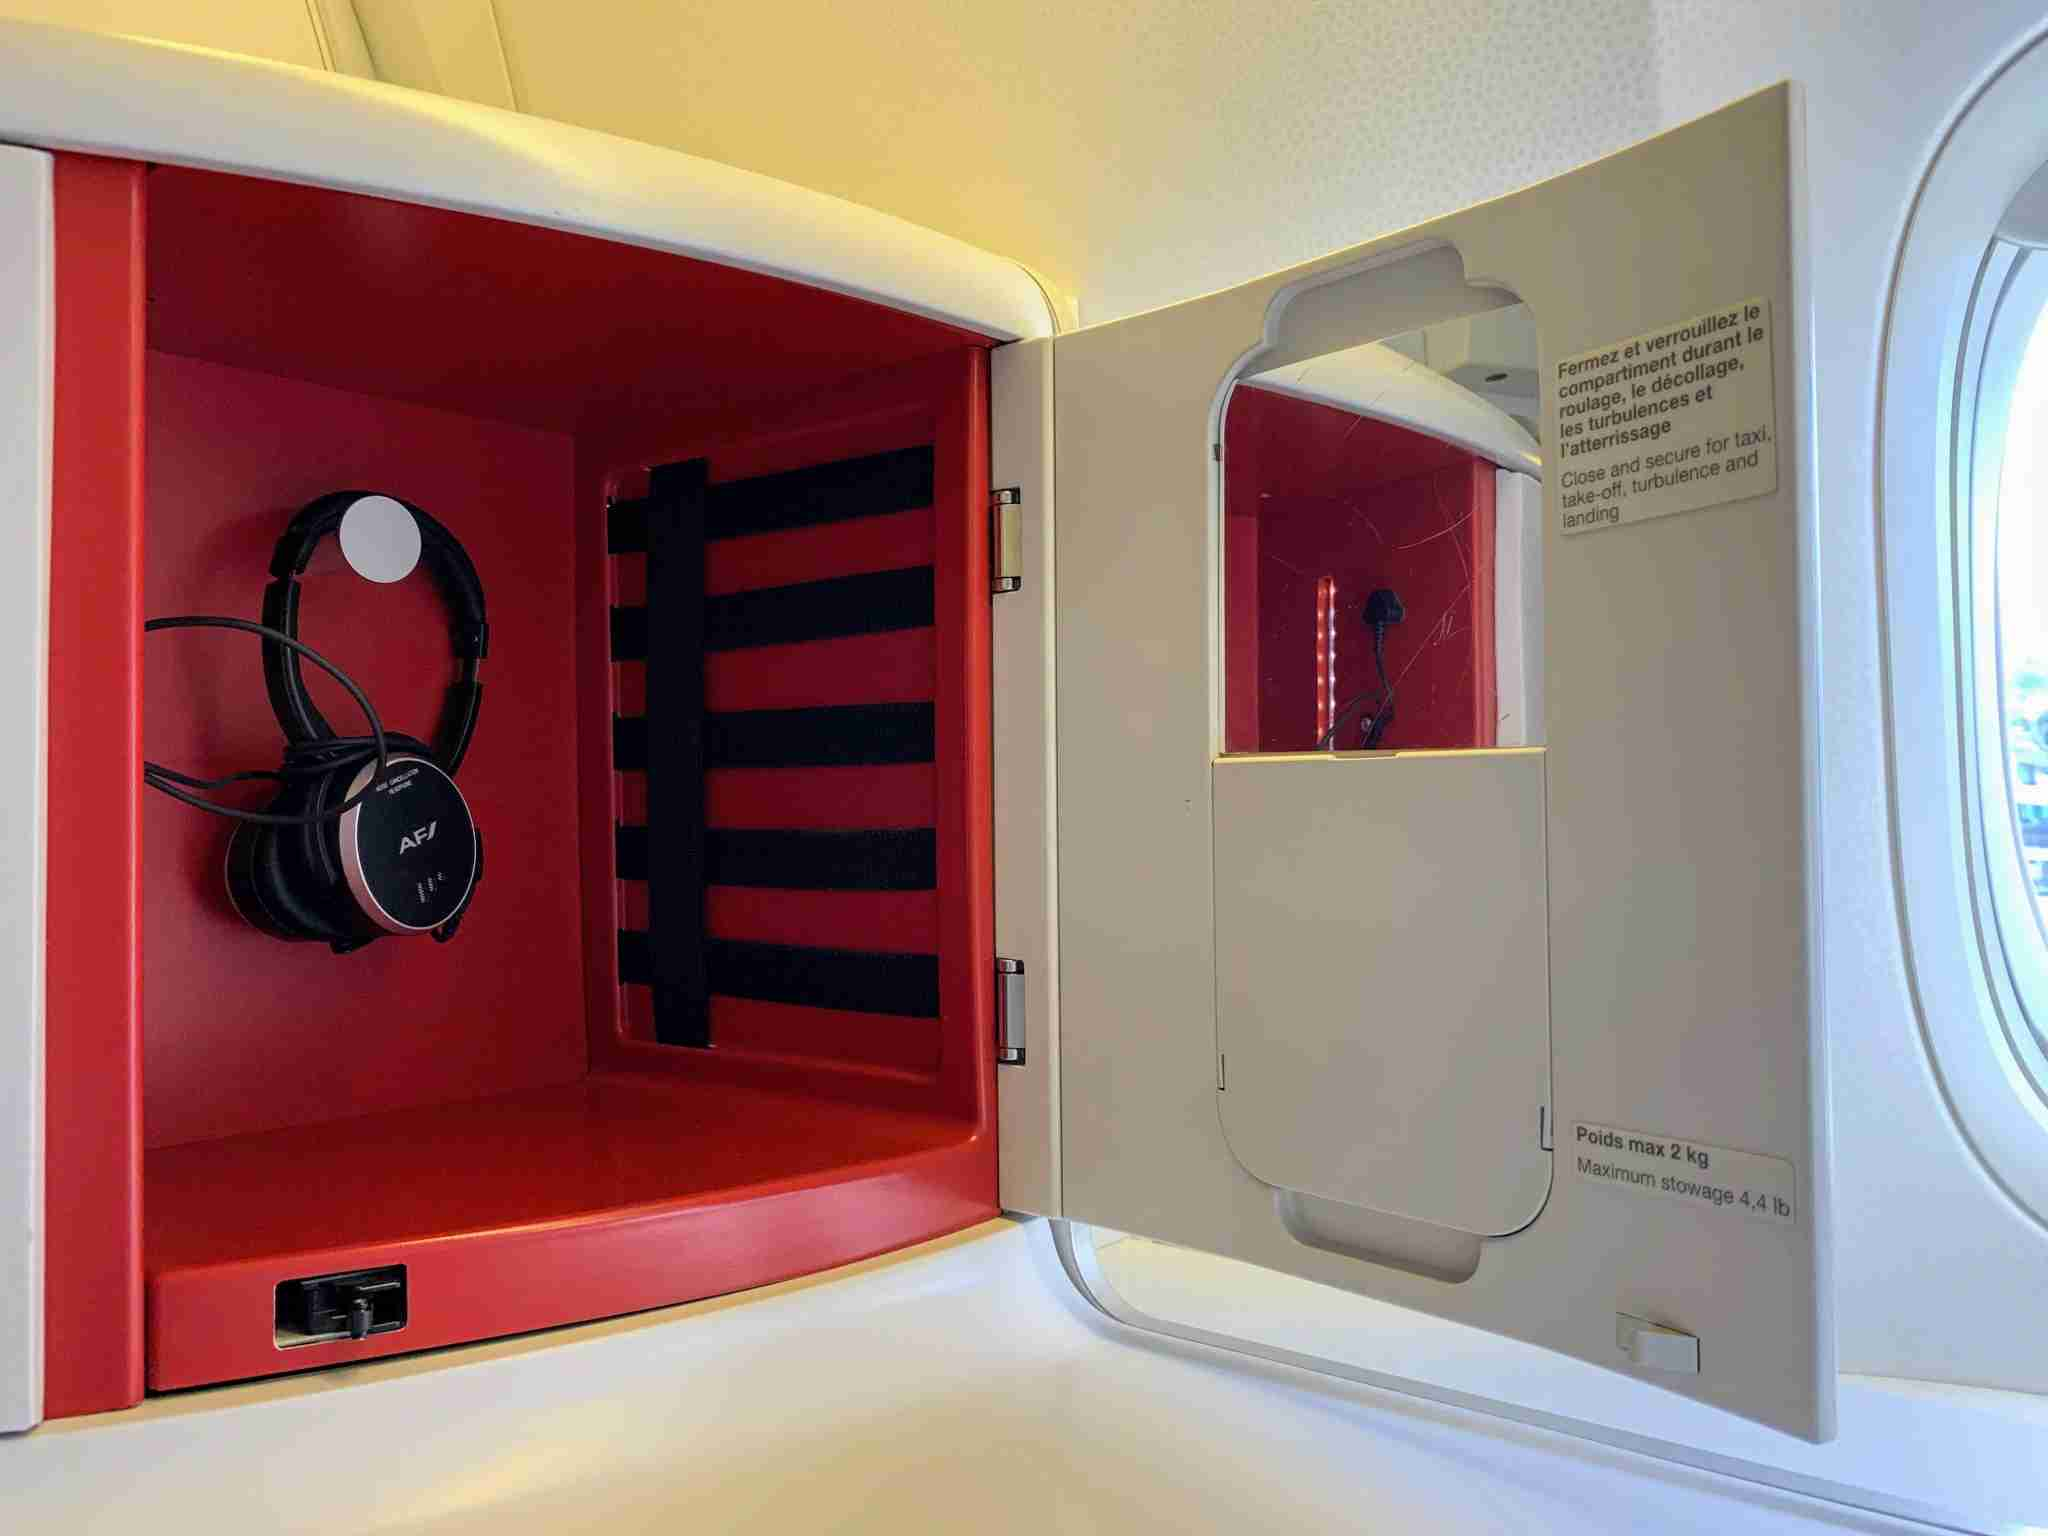 Air France Boeing 777 Business Class headphone nook